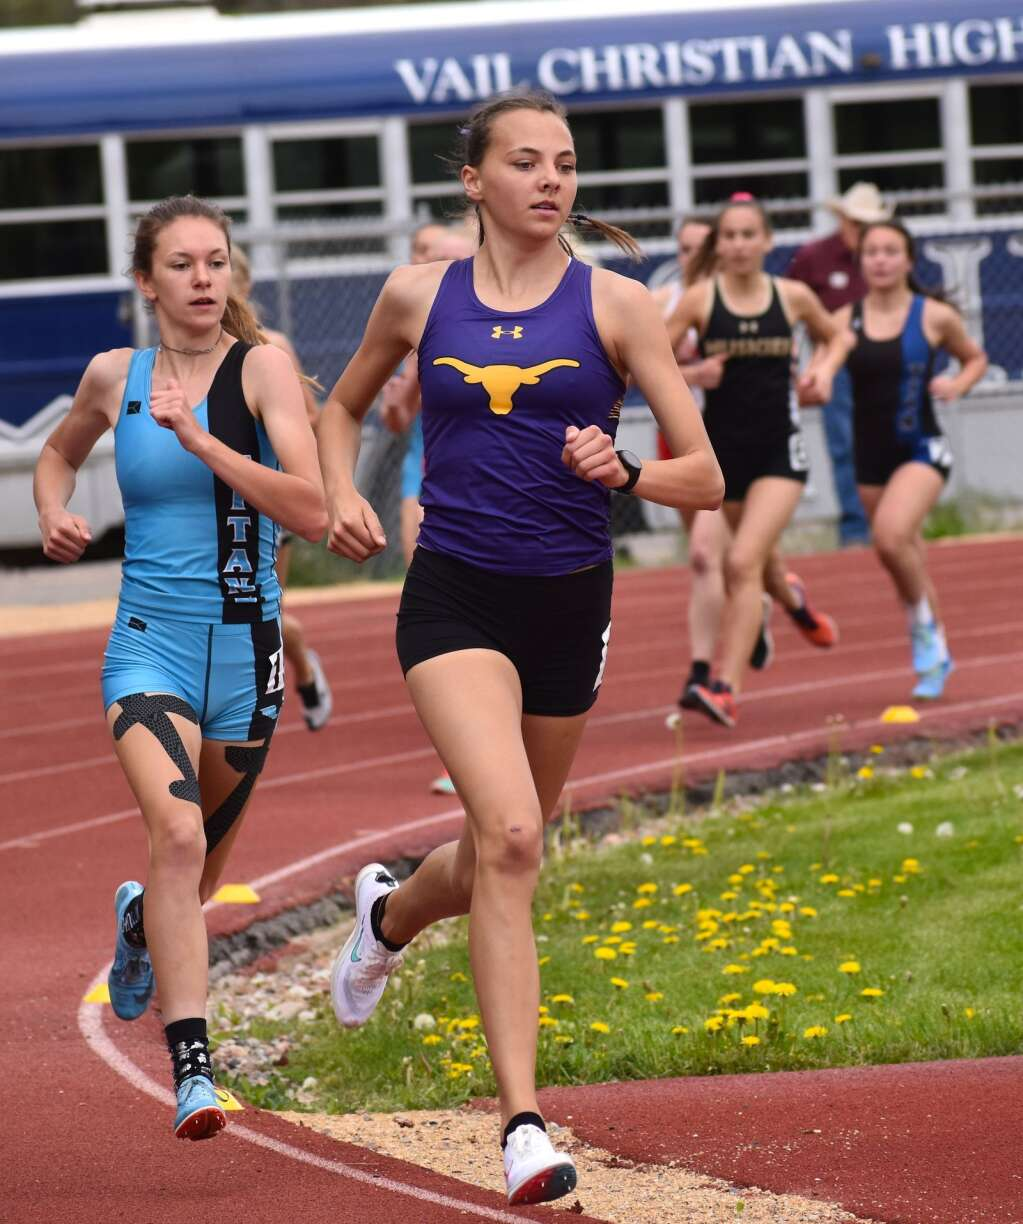 Basalt's Katelyn Maley sets the pace in the girls 800 meters Saturday on the way to the event win.| John Stroud/Post Independent